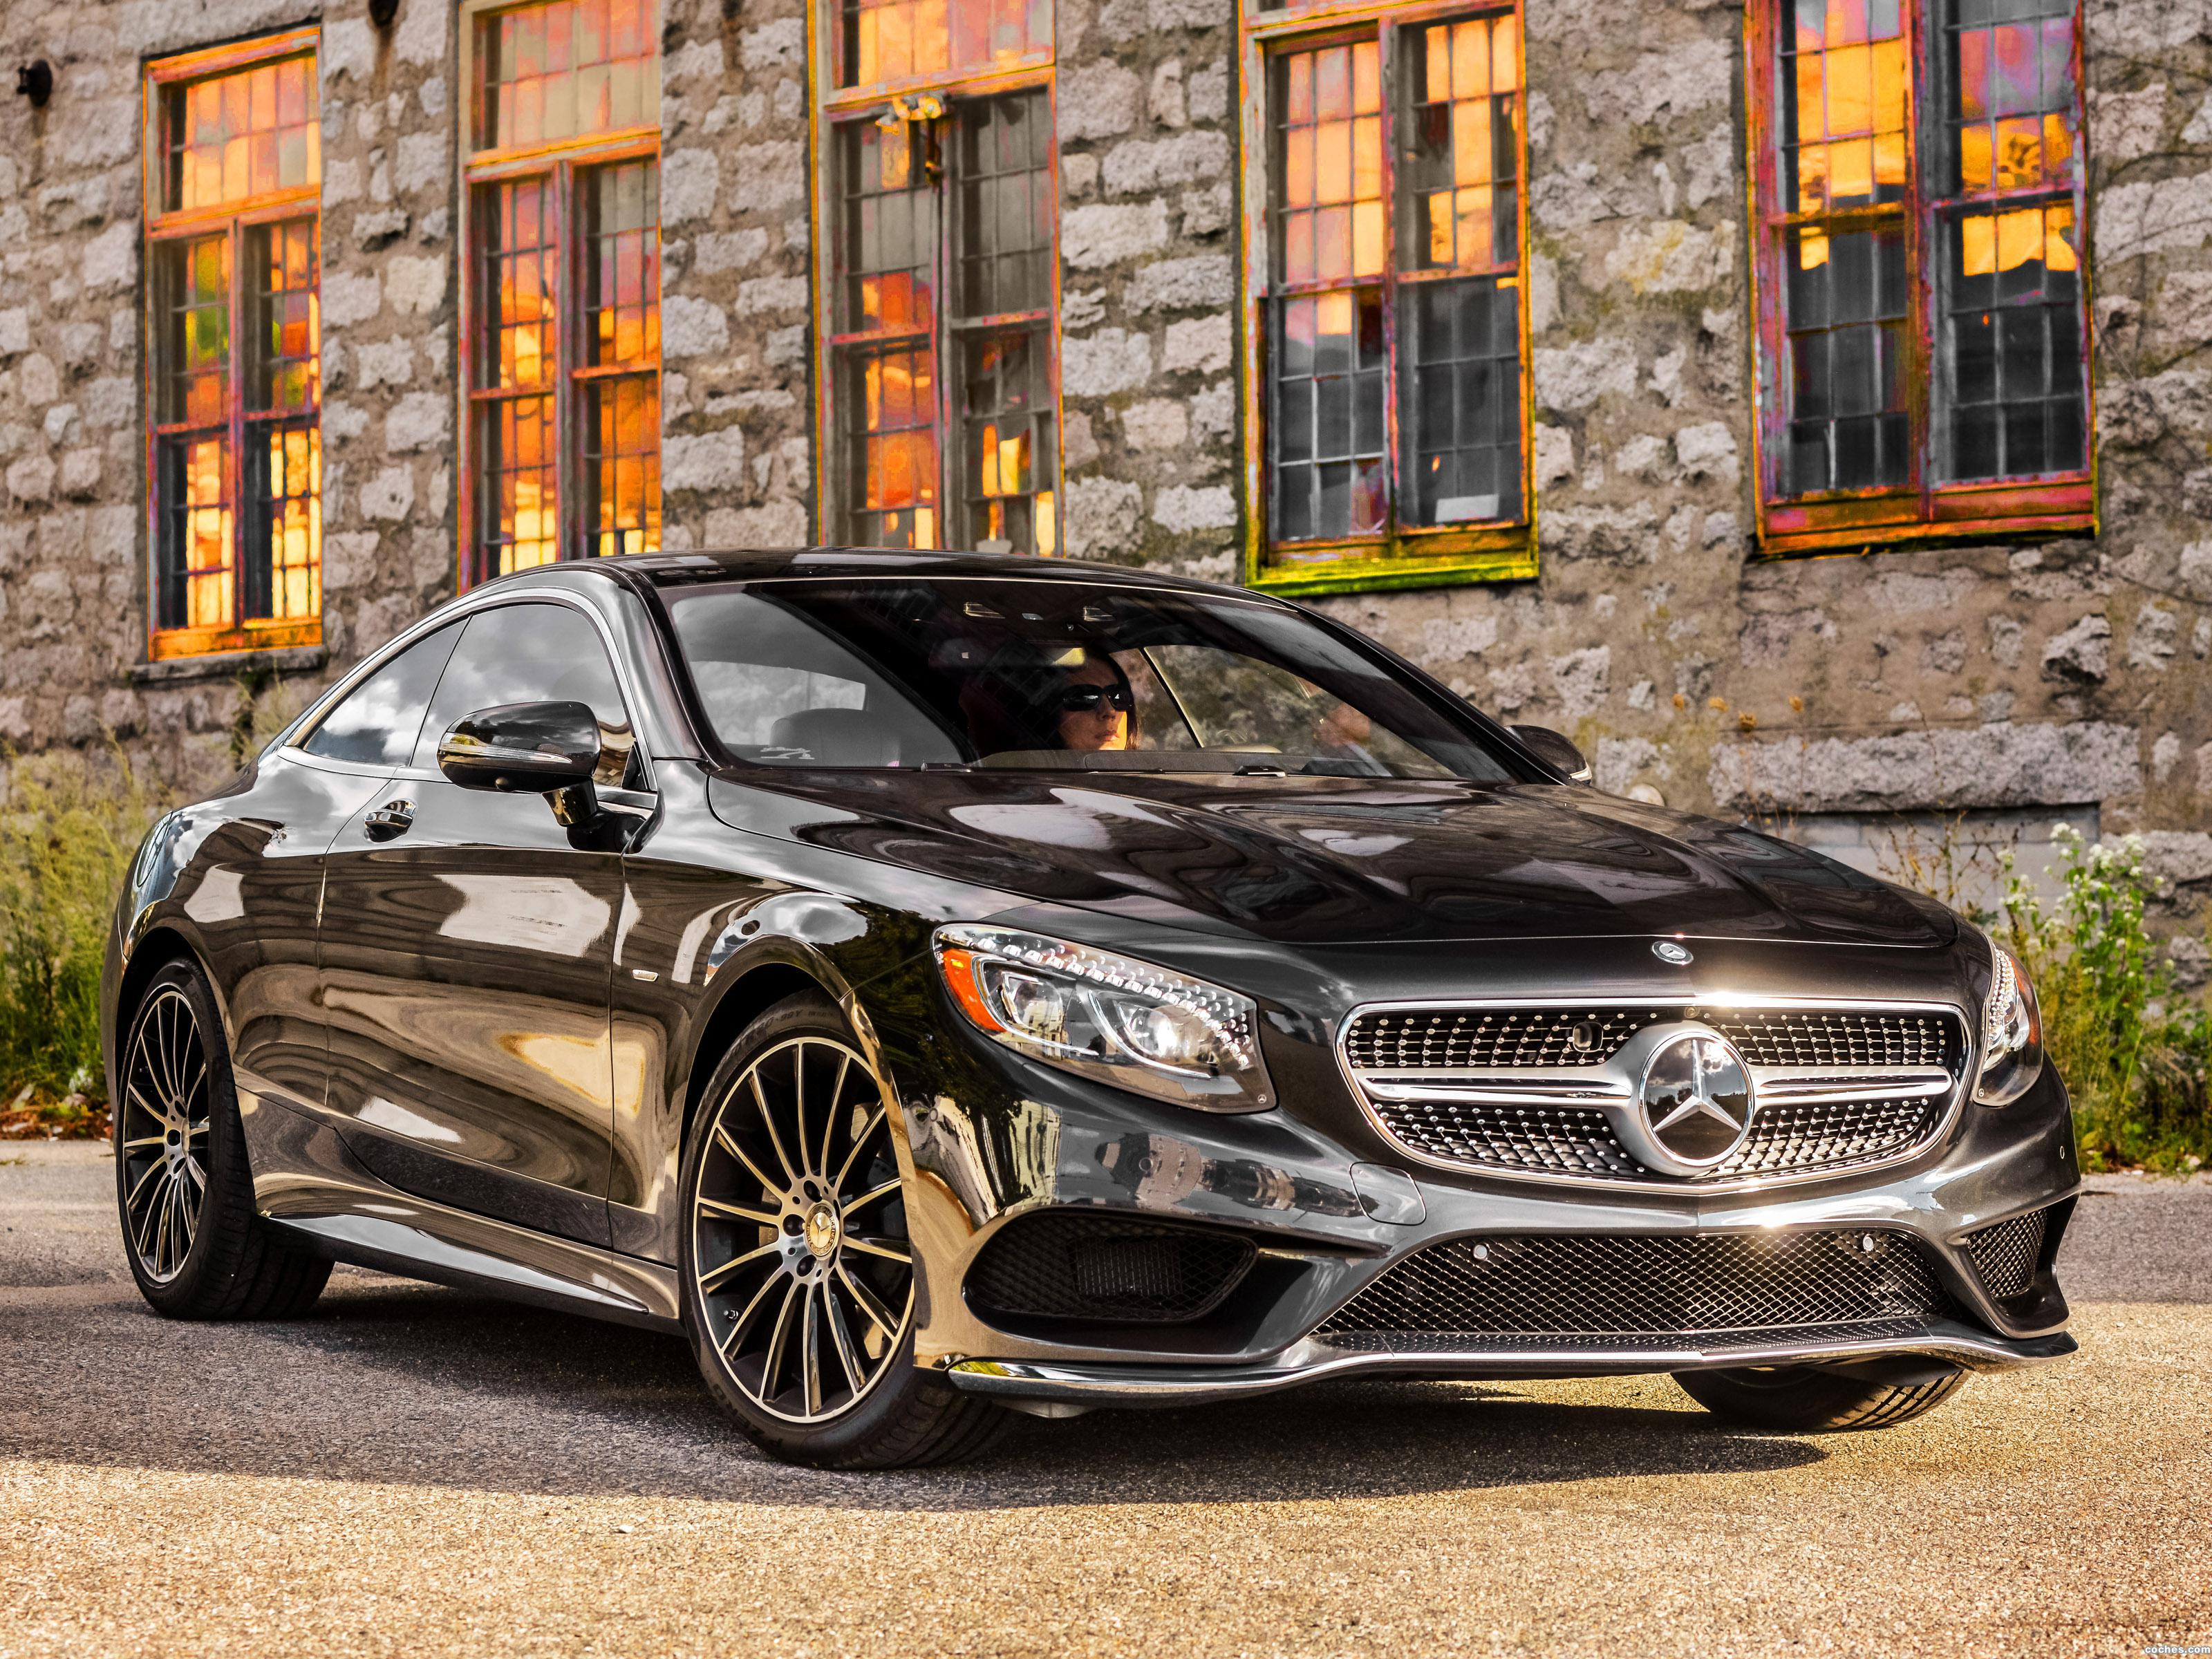 mercedes_s550-4matic-coupe-usa-2015_r38.jpg